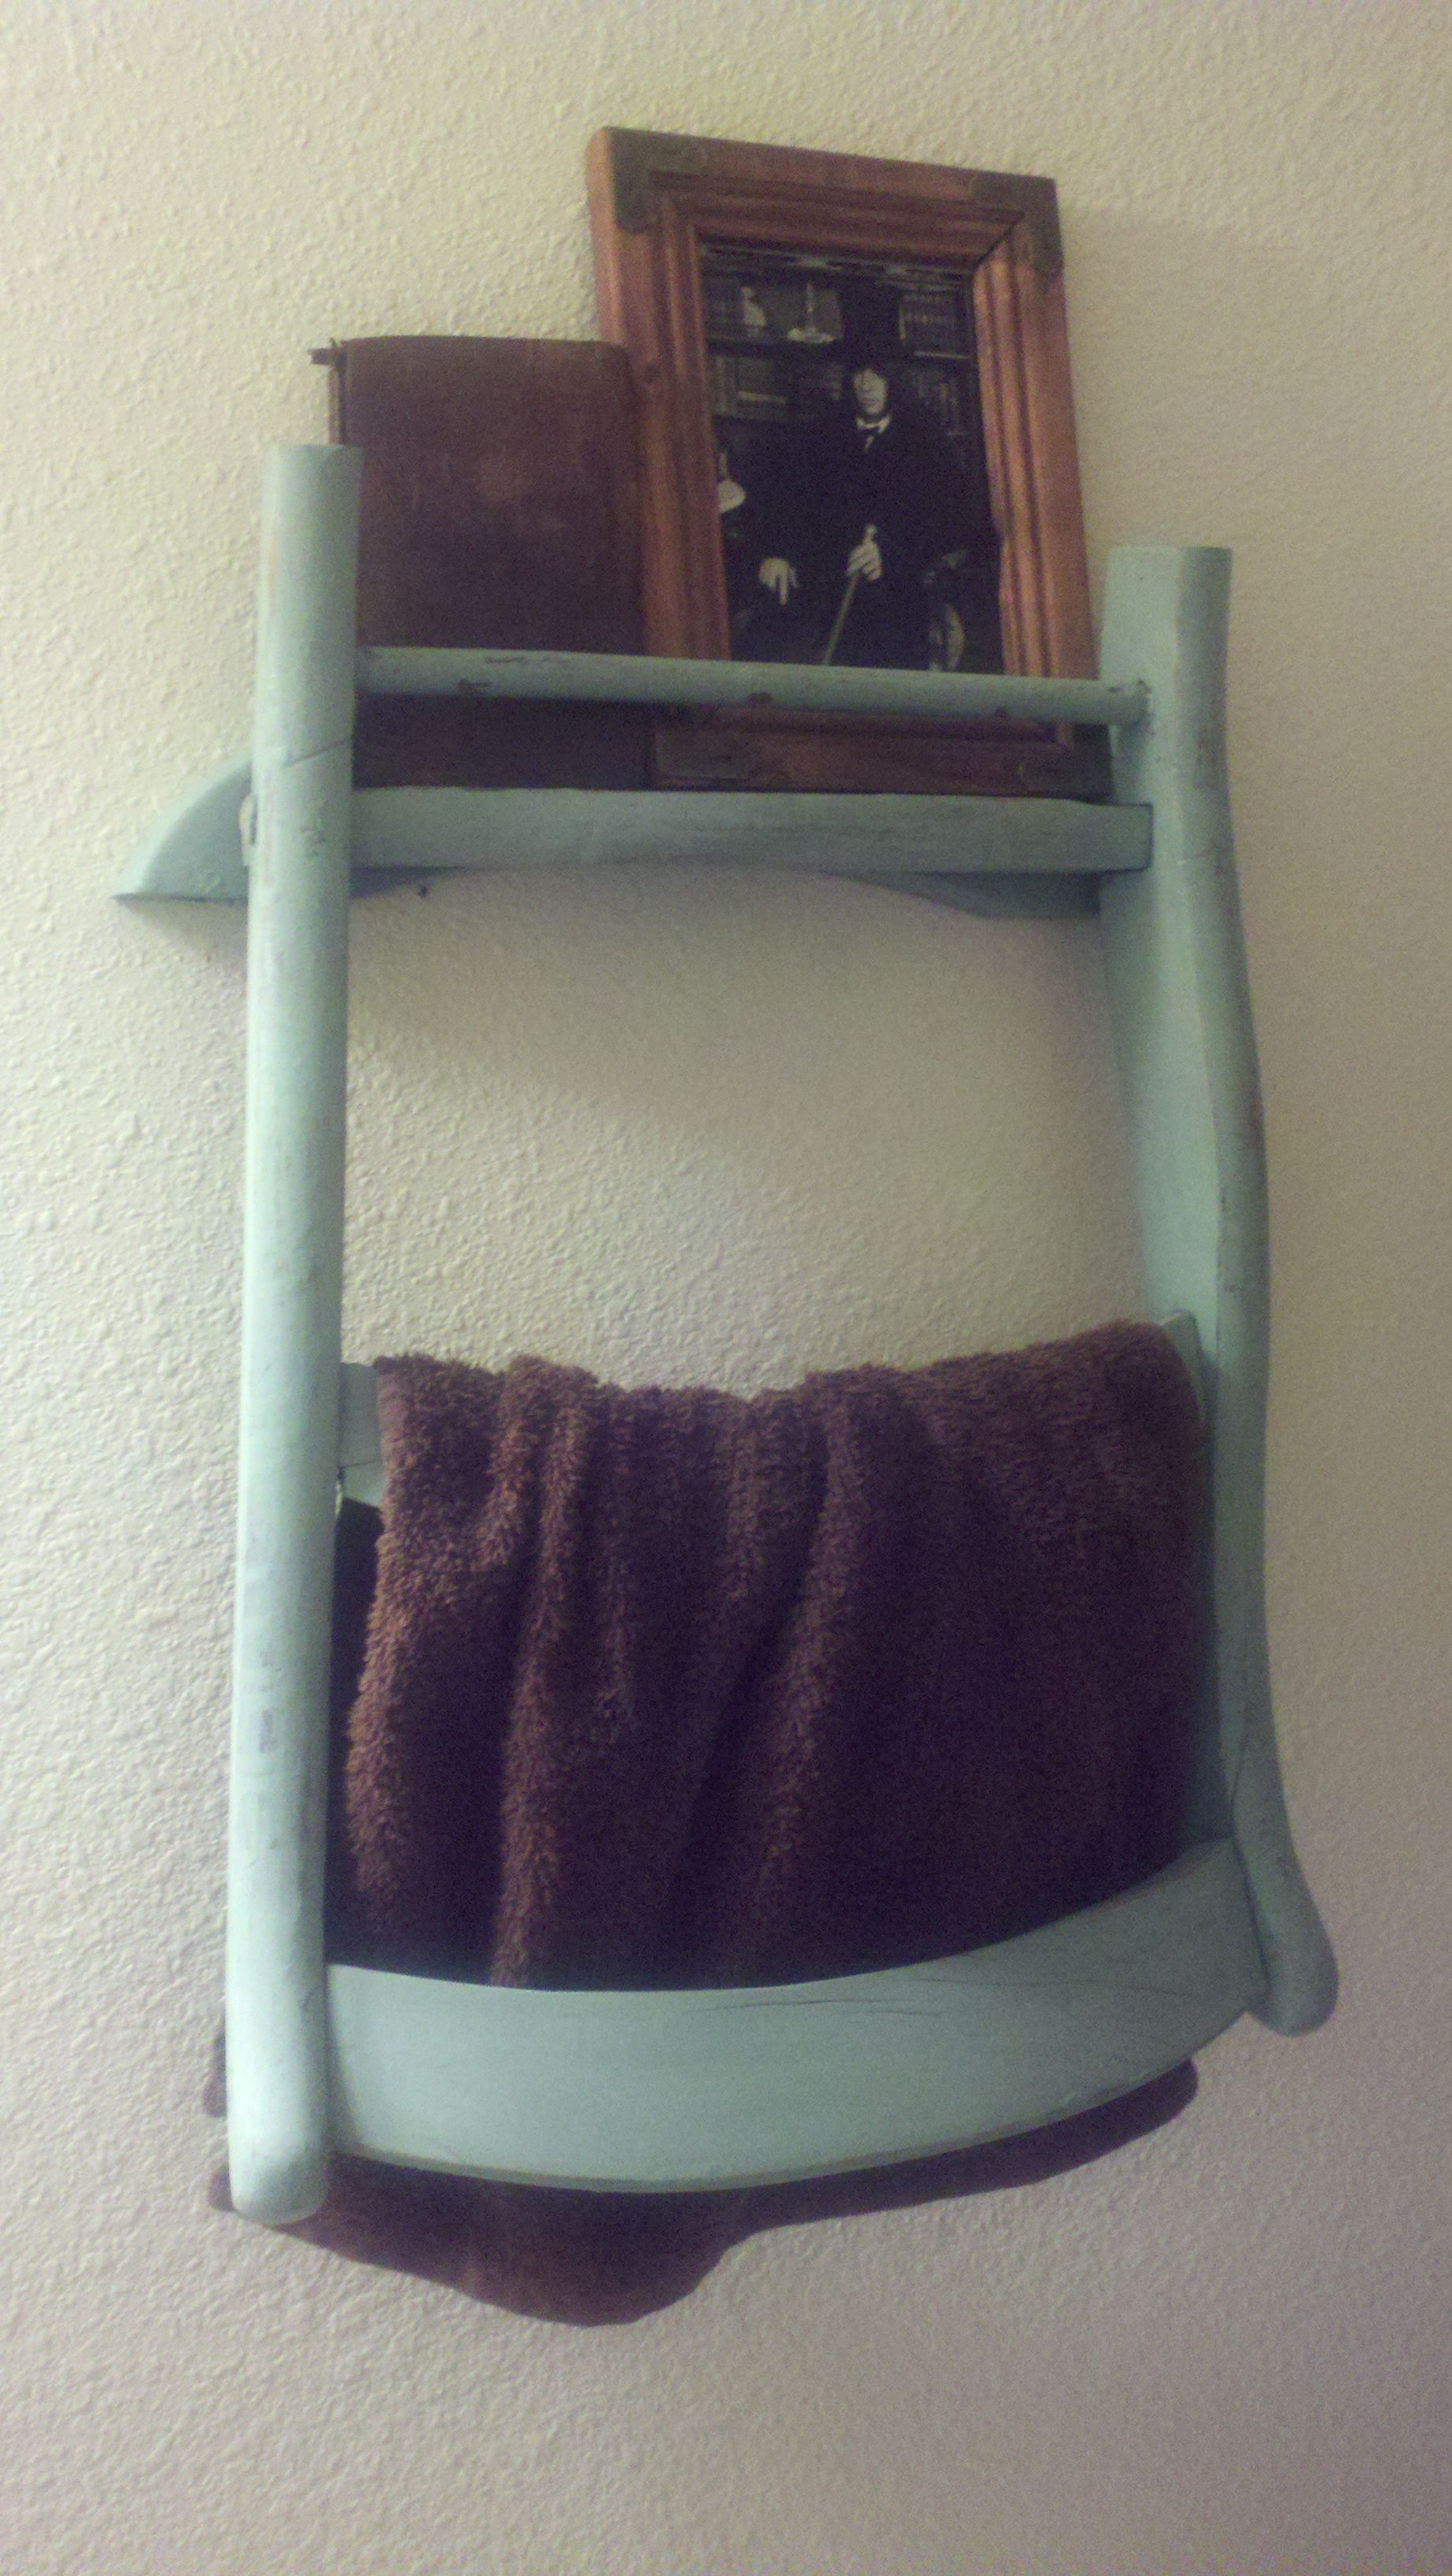 My old straight-backed wooden chair turned bathroom decor/hand towel rack! =)